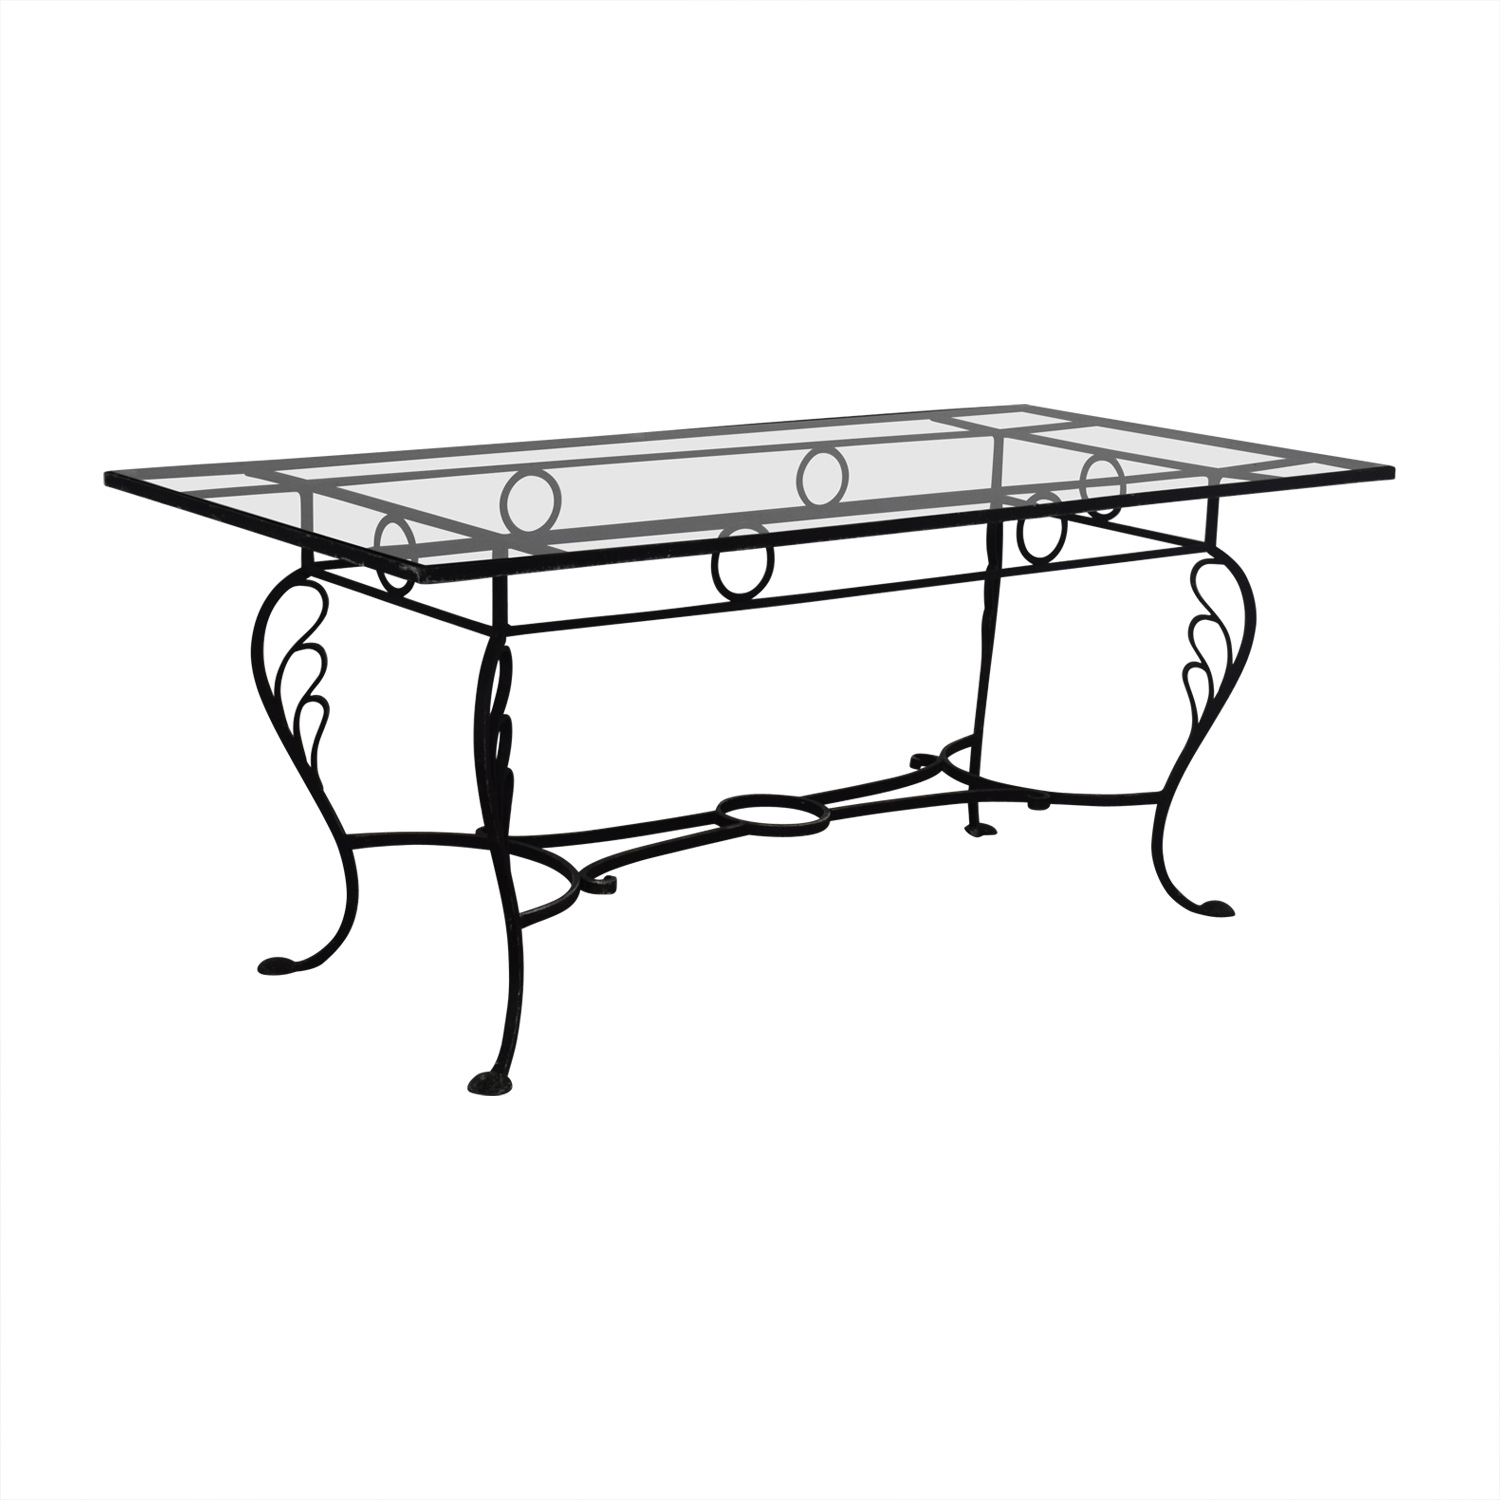 80 off vintage wrought iron base and glass top dining table tables. Black Bedroom Furniture Sets. Home Design Ideas